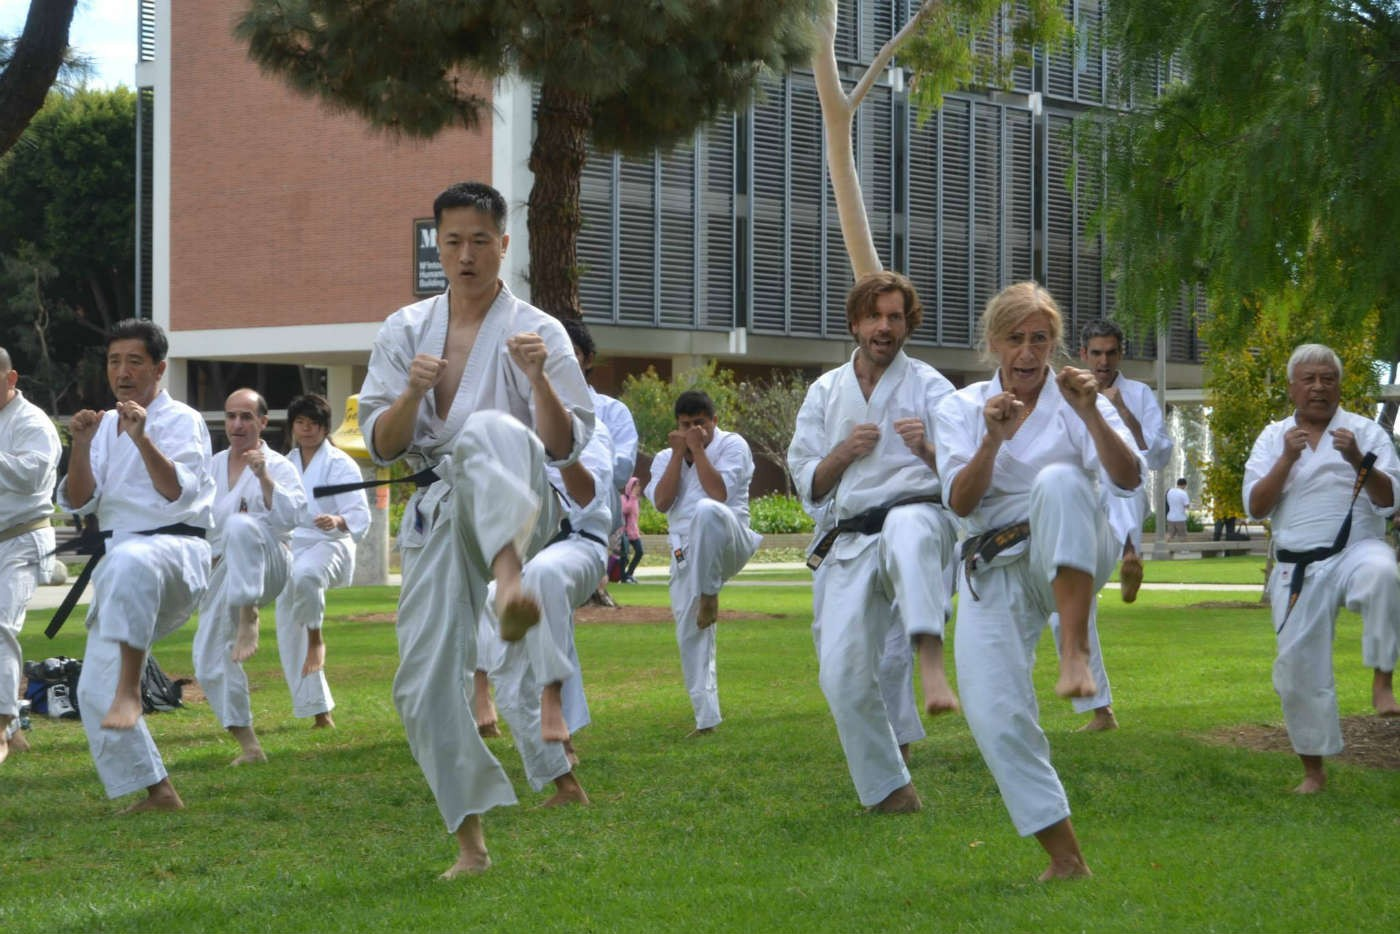 CSULB Shotokan Karate Club 2014 karate demonstration